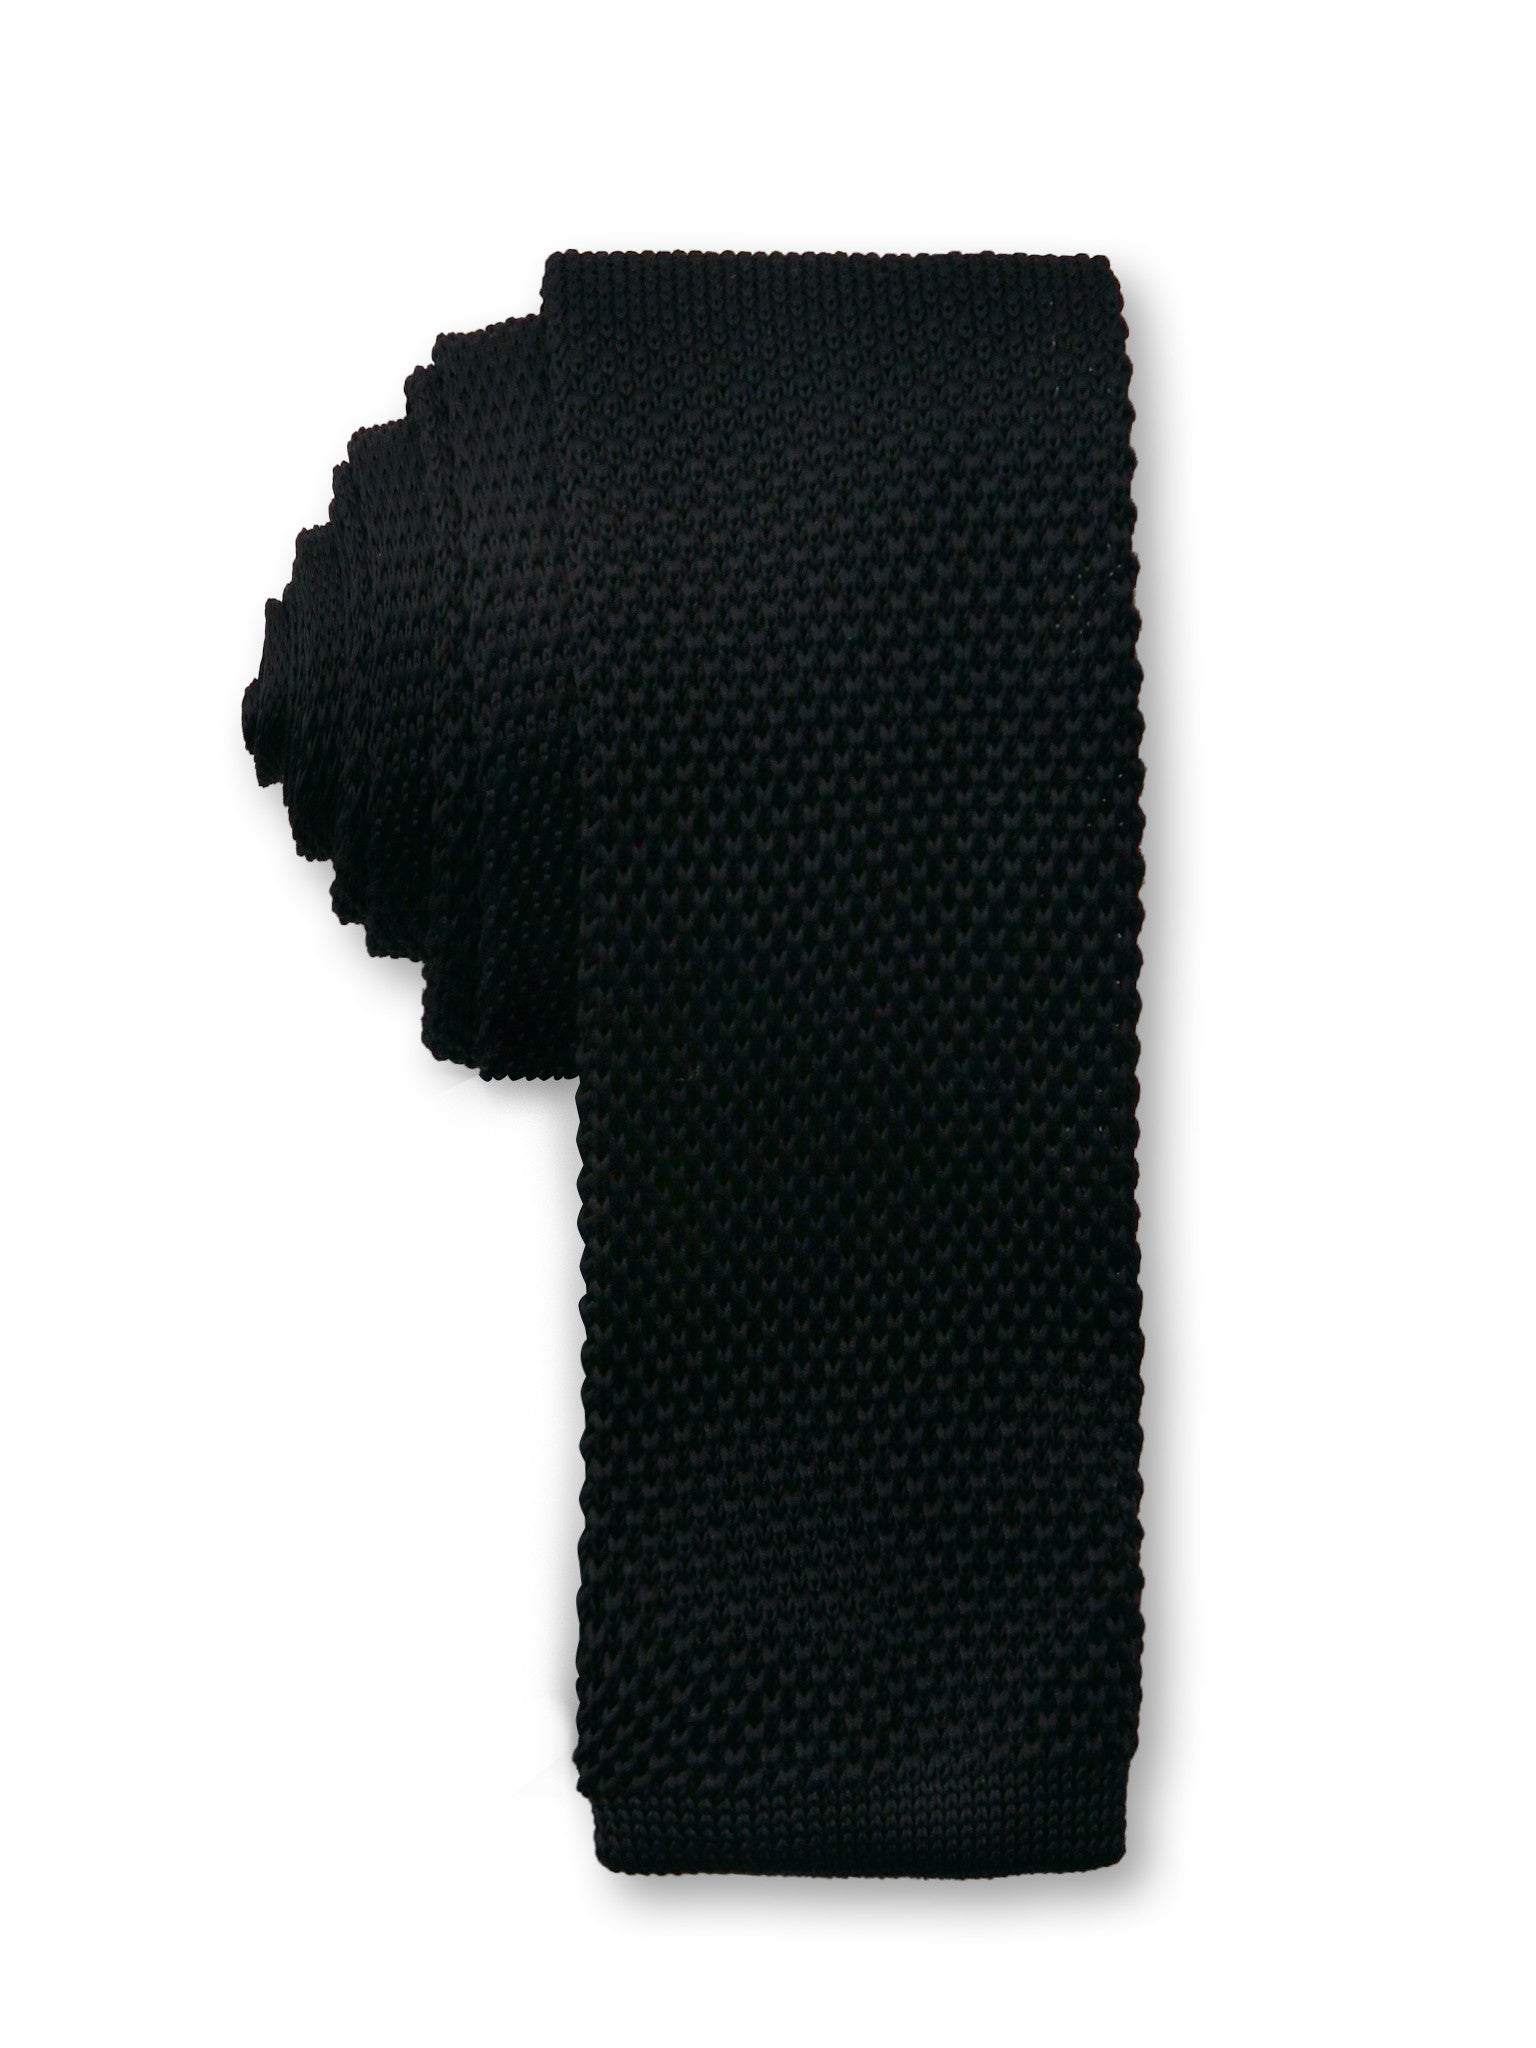 Black Knitted 6cm Ganton Polyester Tie Made in Australia